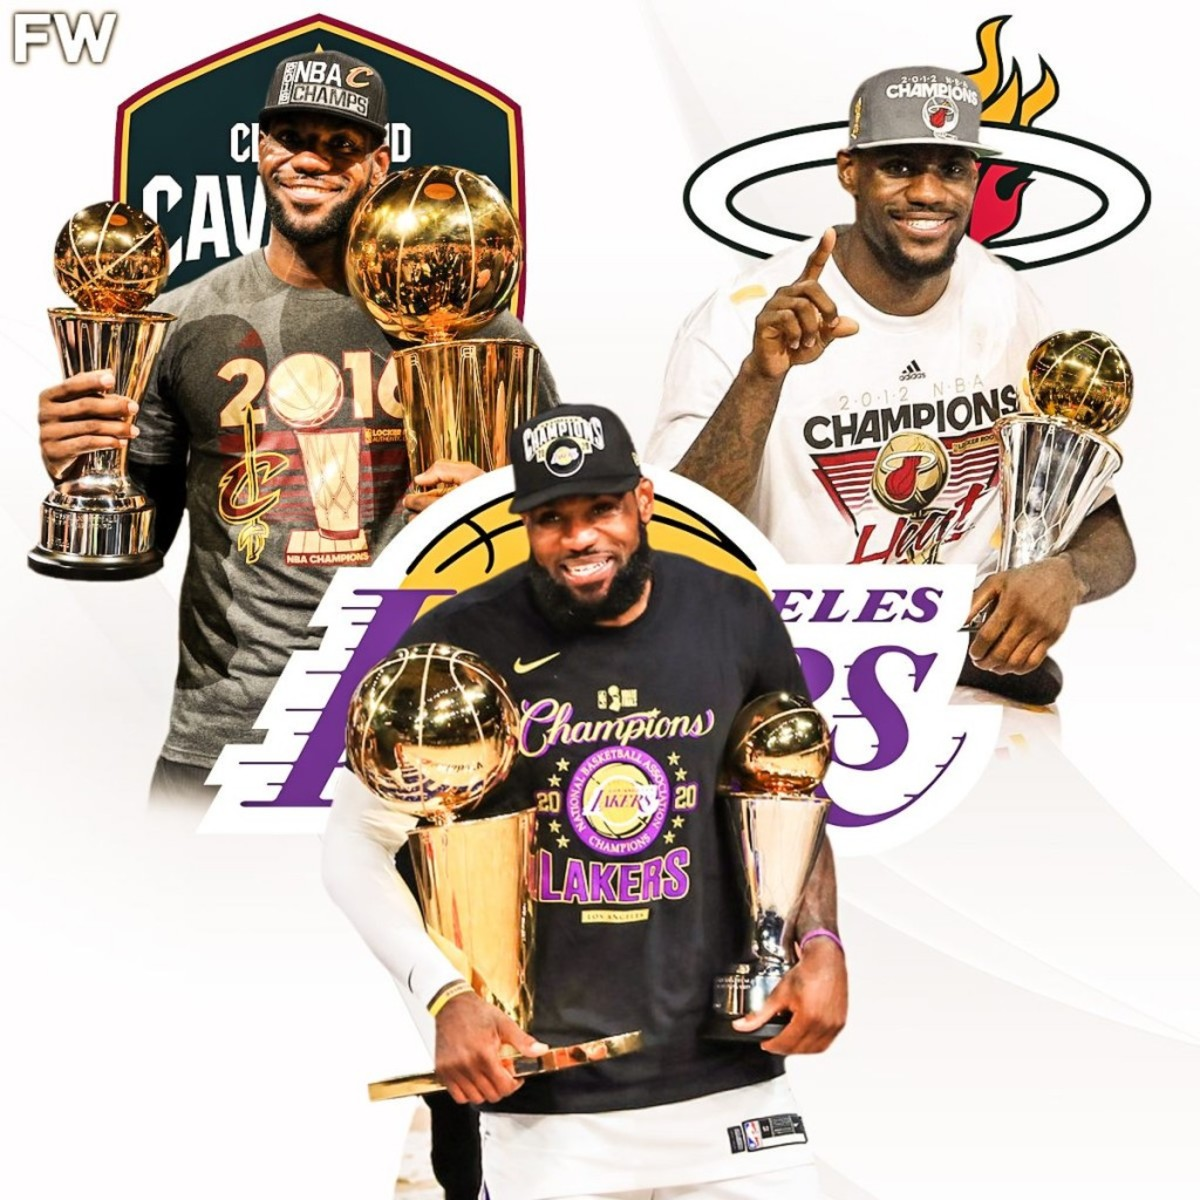 3 Finals MVPs With 3 Different Teams